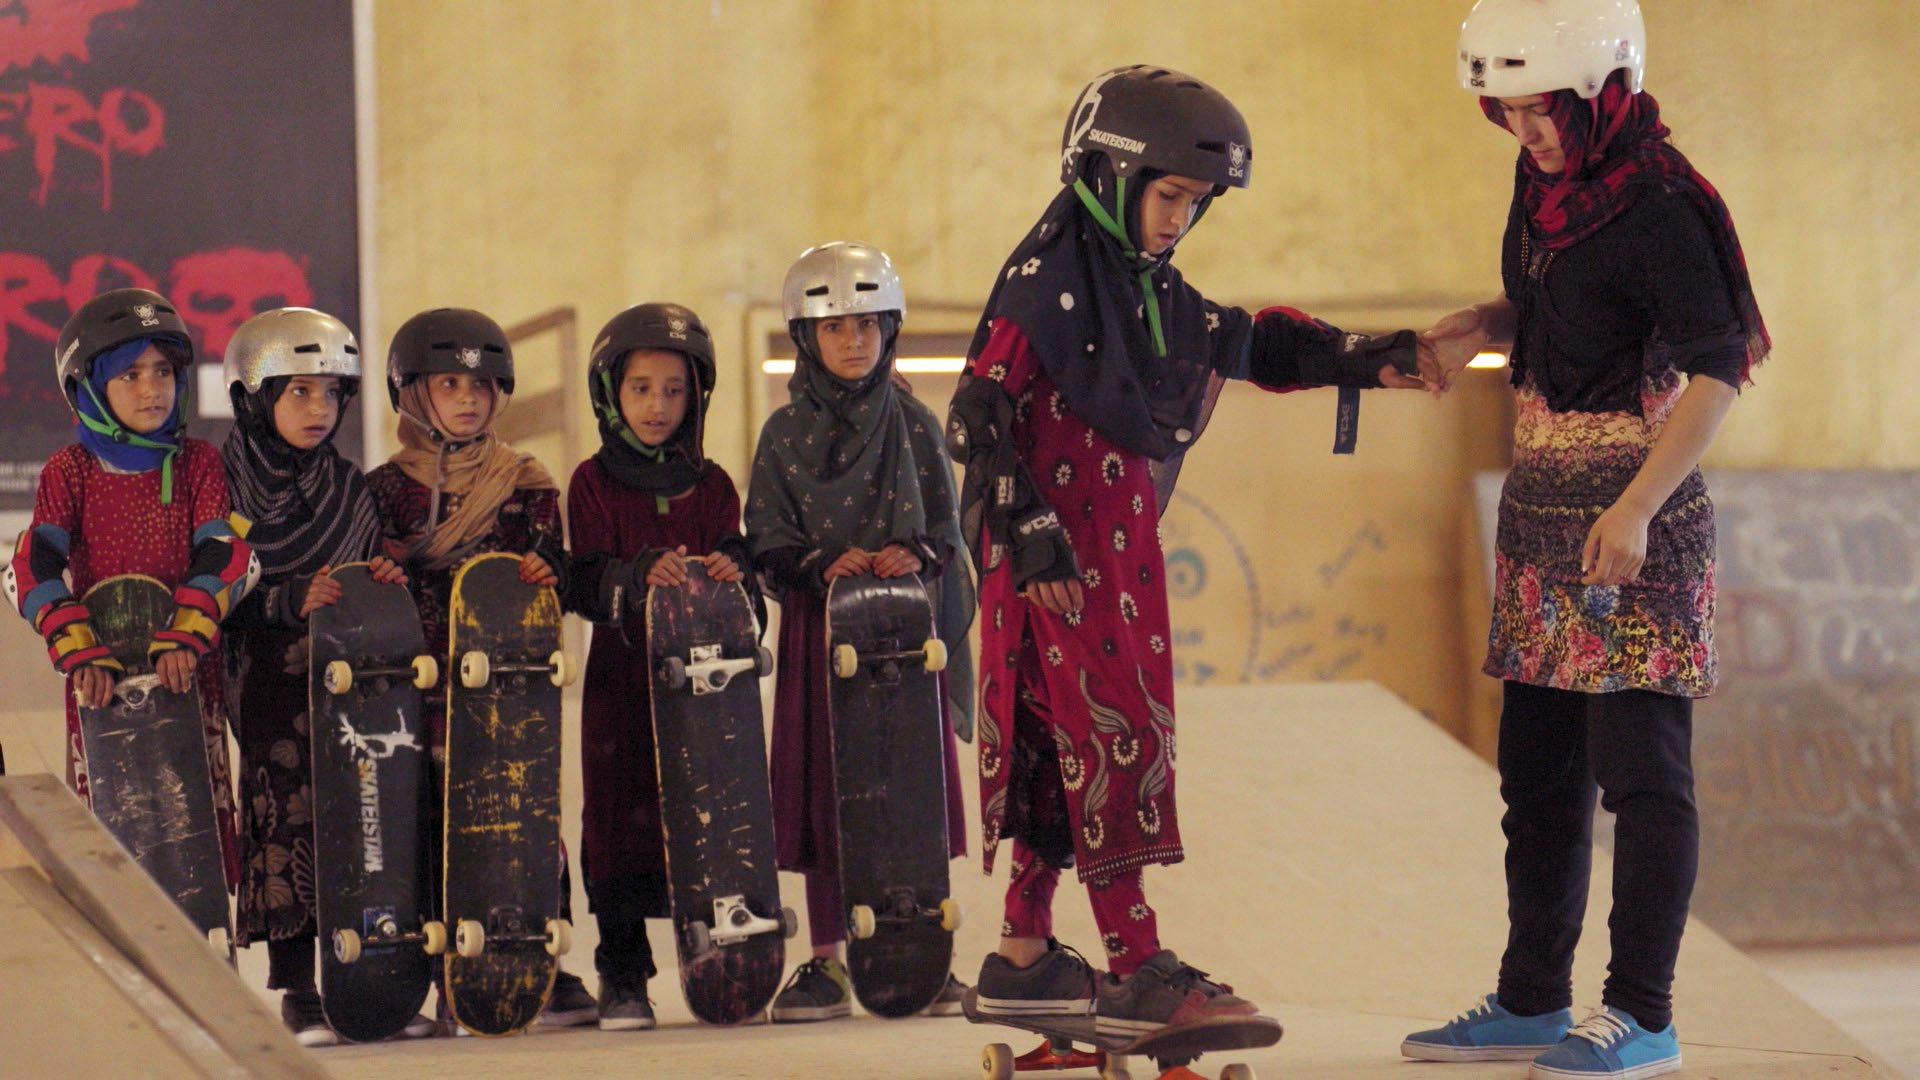 Learning to Skate in a Warzone (If You're a Girl)